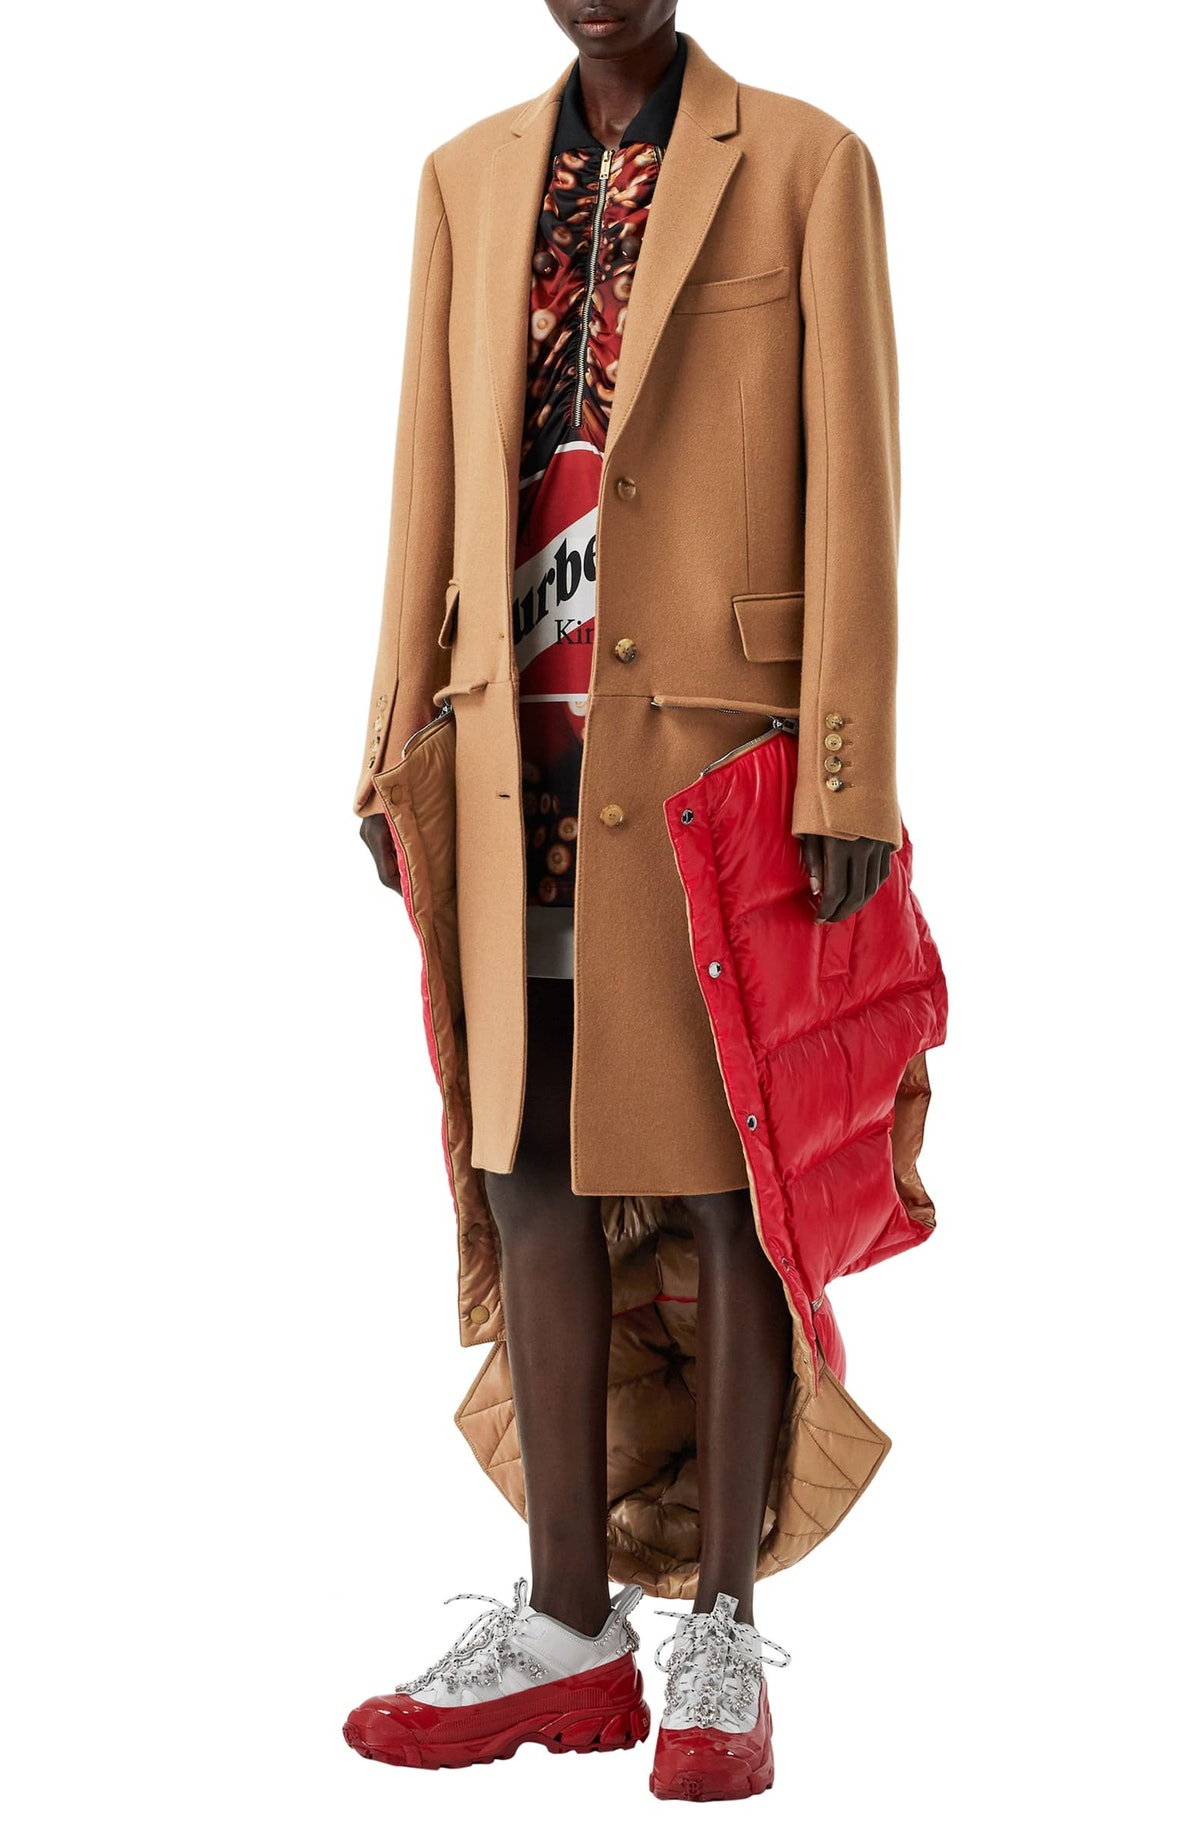 Burberry coat on sale at Nordstrom